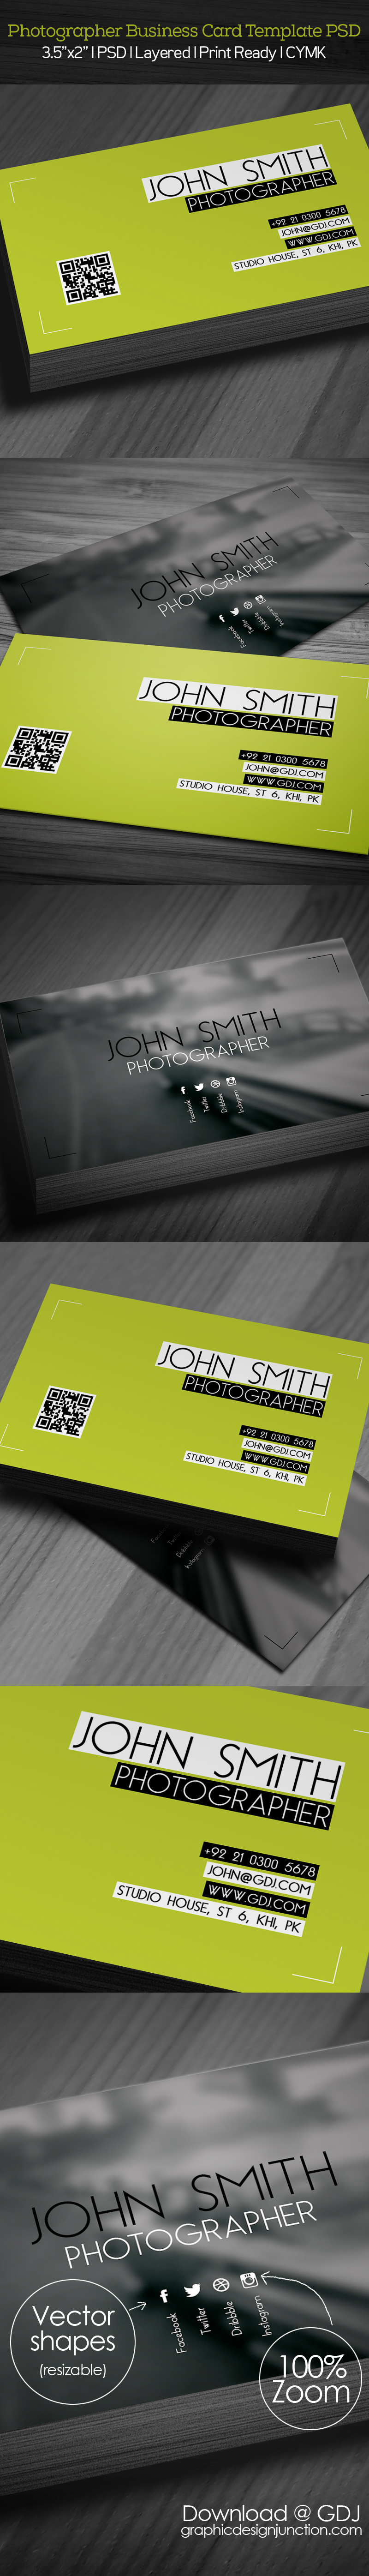 free photographer business card psd template freebies graphic